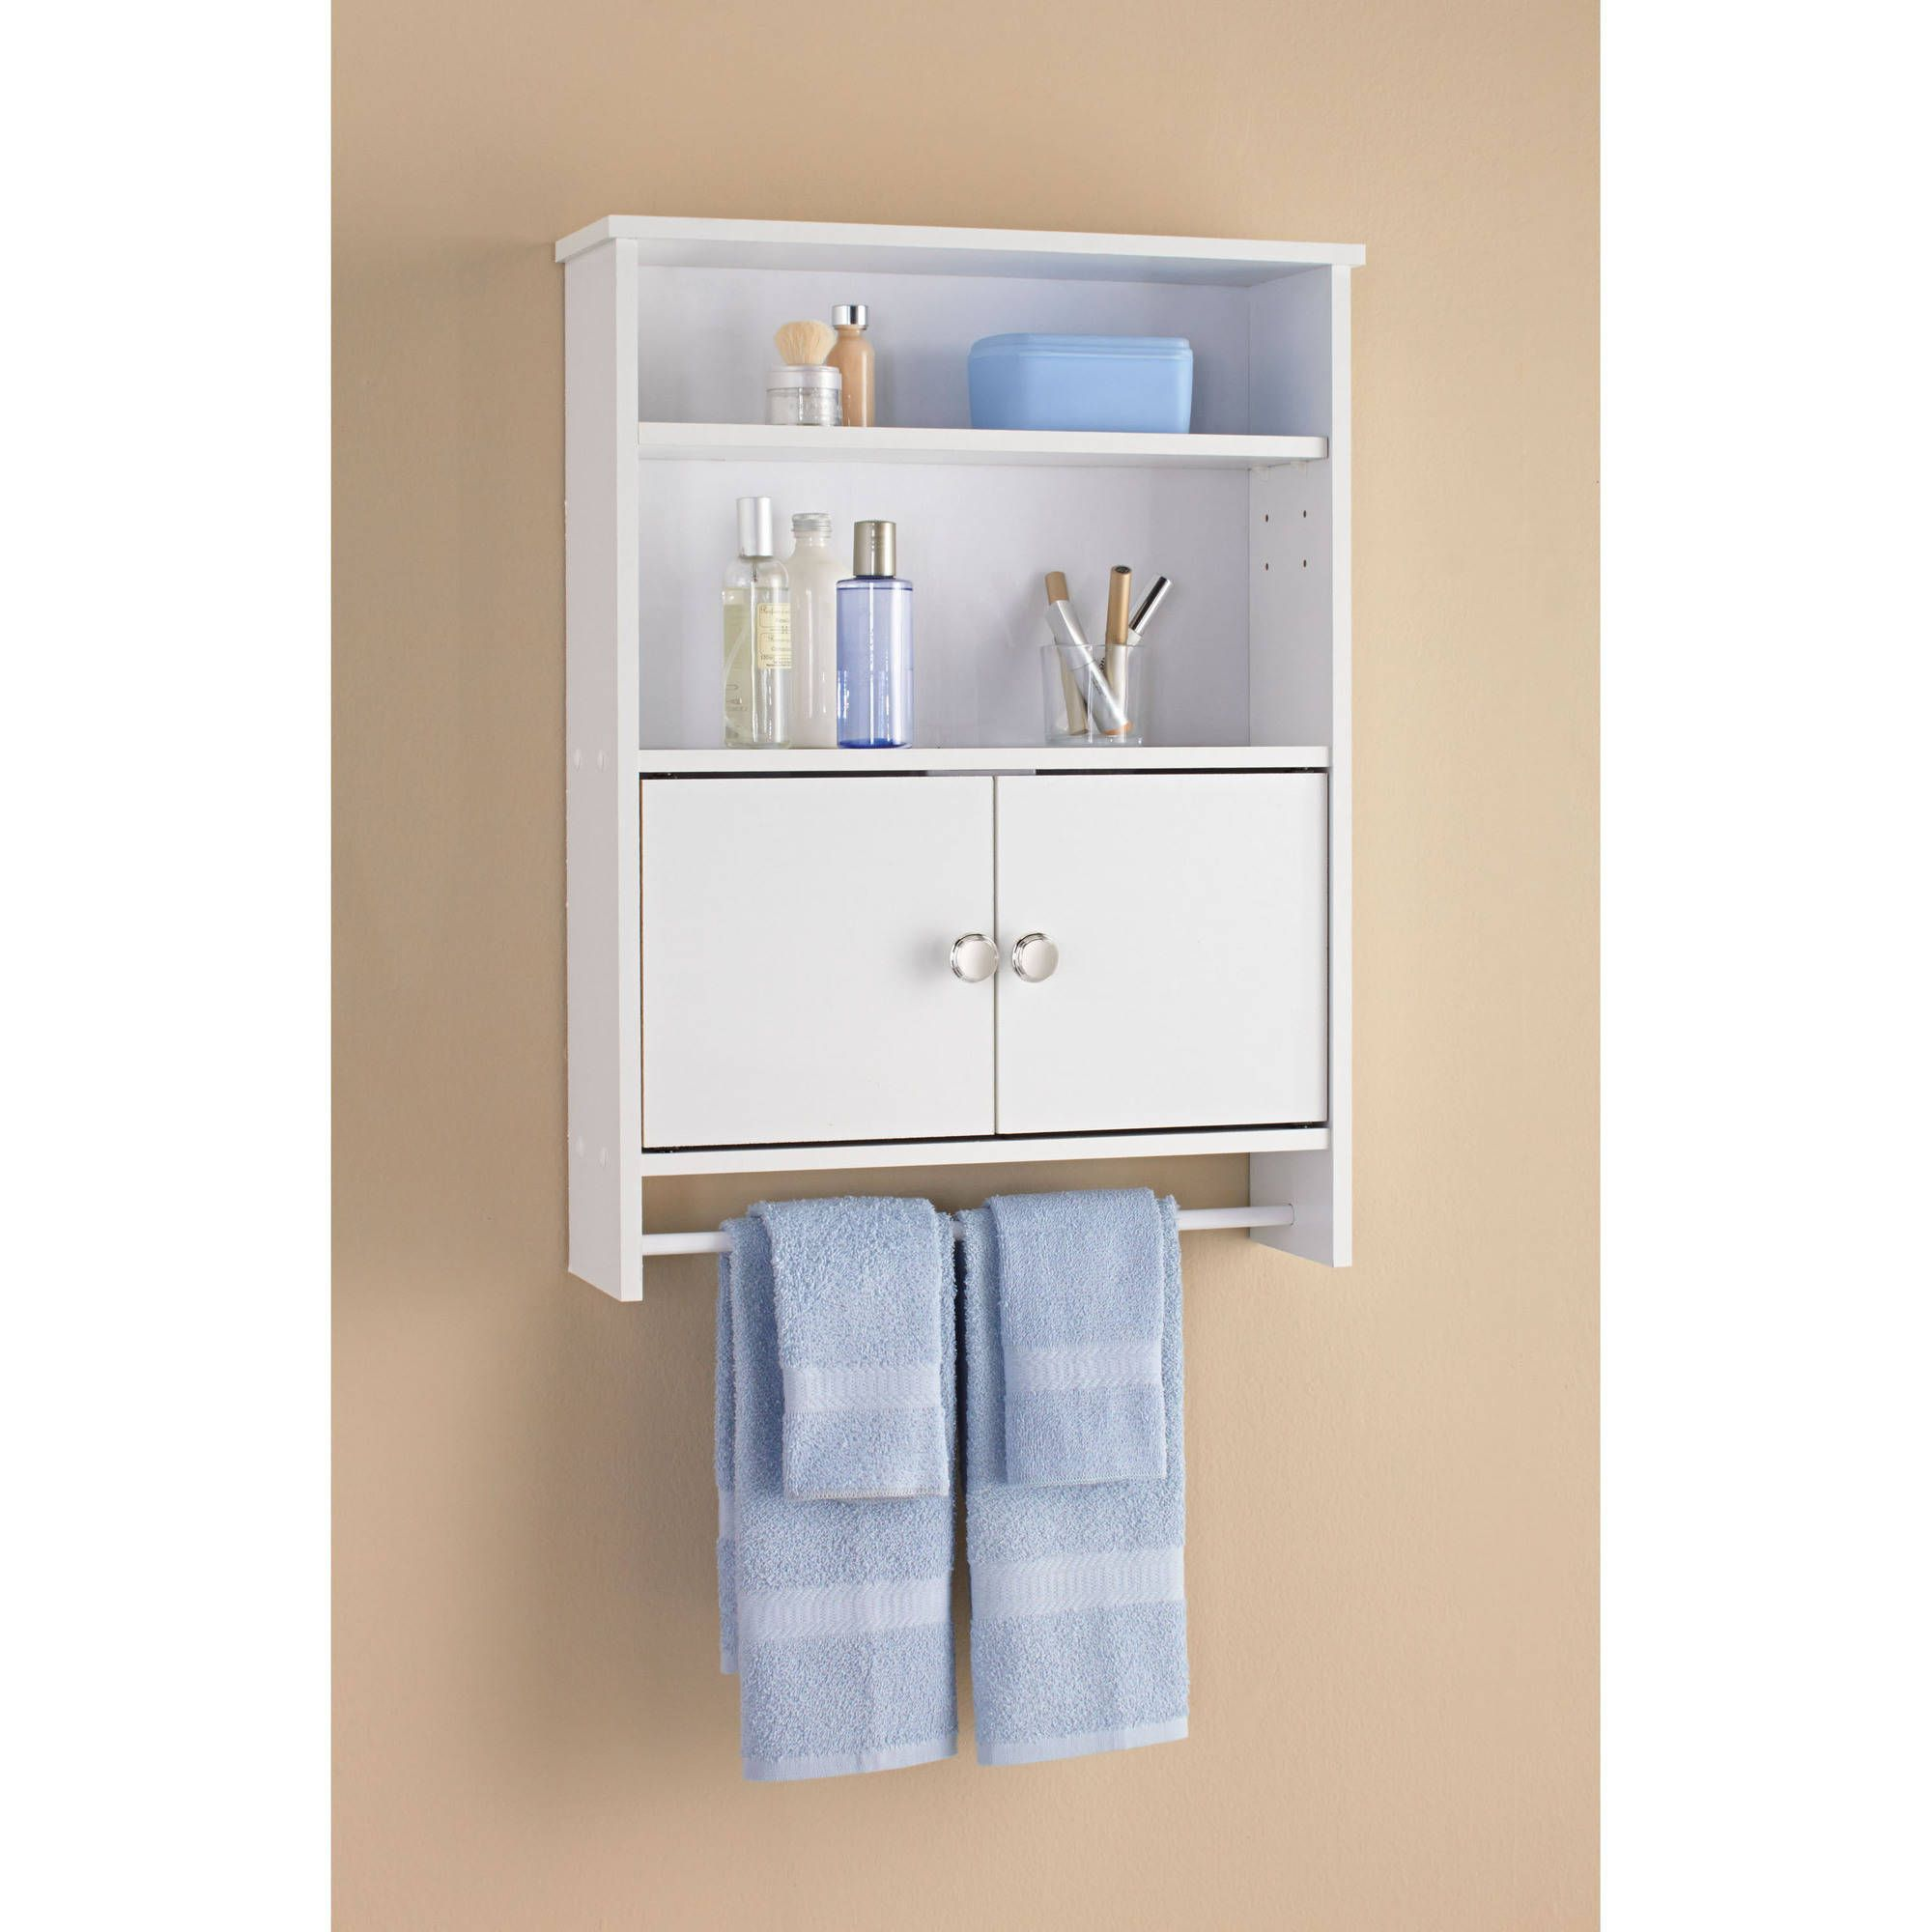 The Mainstays White Wood Wall Cabinet offers an attractive and ...